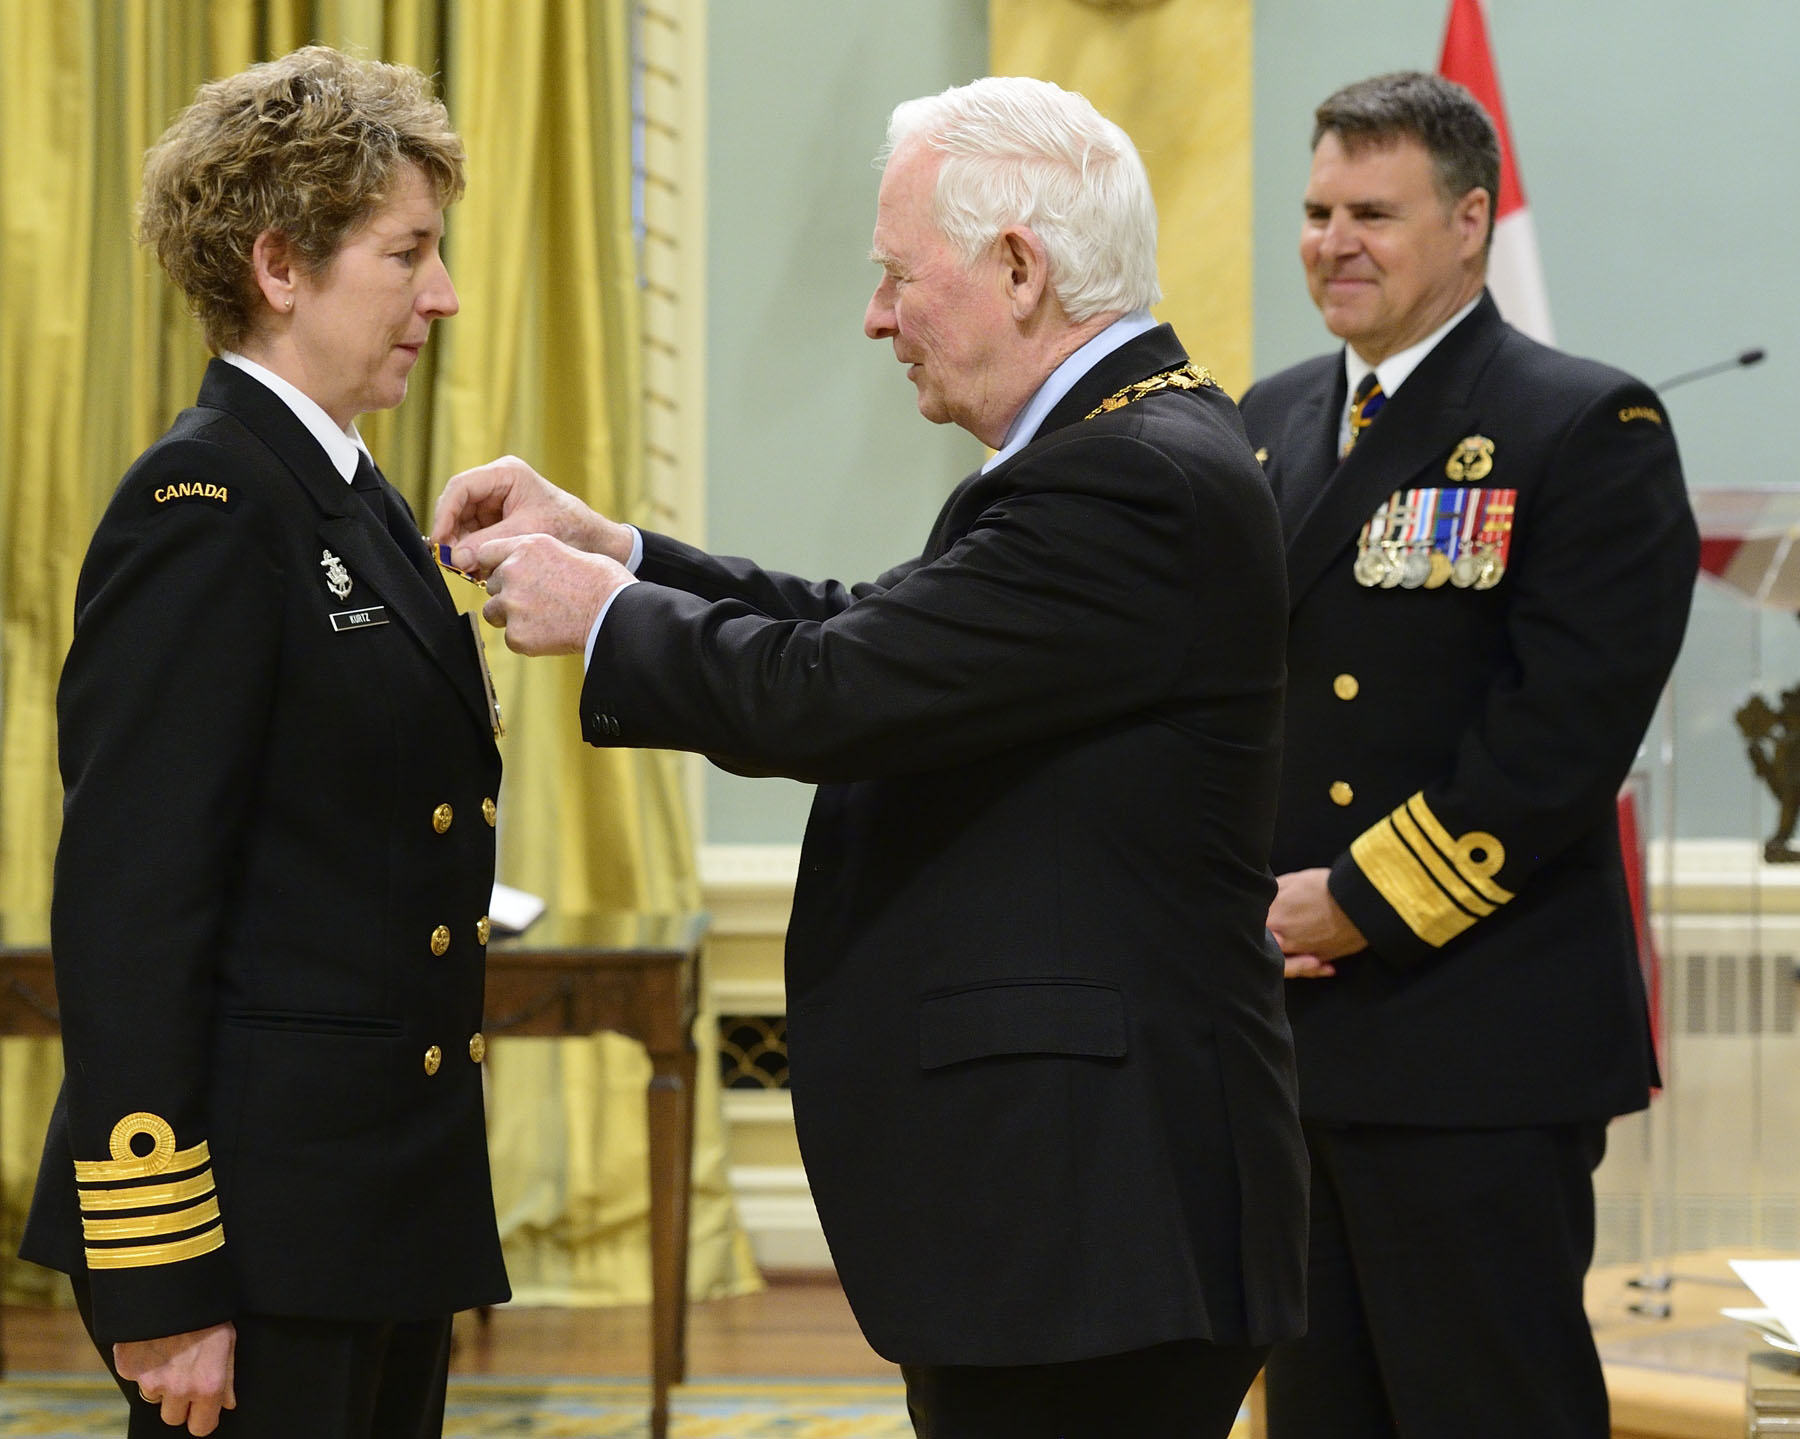 His Excellency presented the Order of Military Merit at the Officer level (O.M.M.) to Captain(N) Josée Kurtz, O.M.M., C.D., from the Office of the Director Naval Personnel and Training